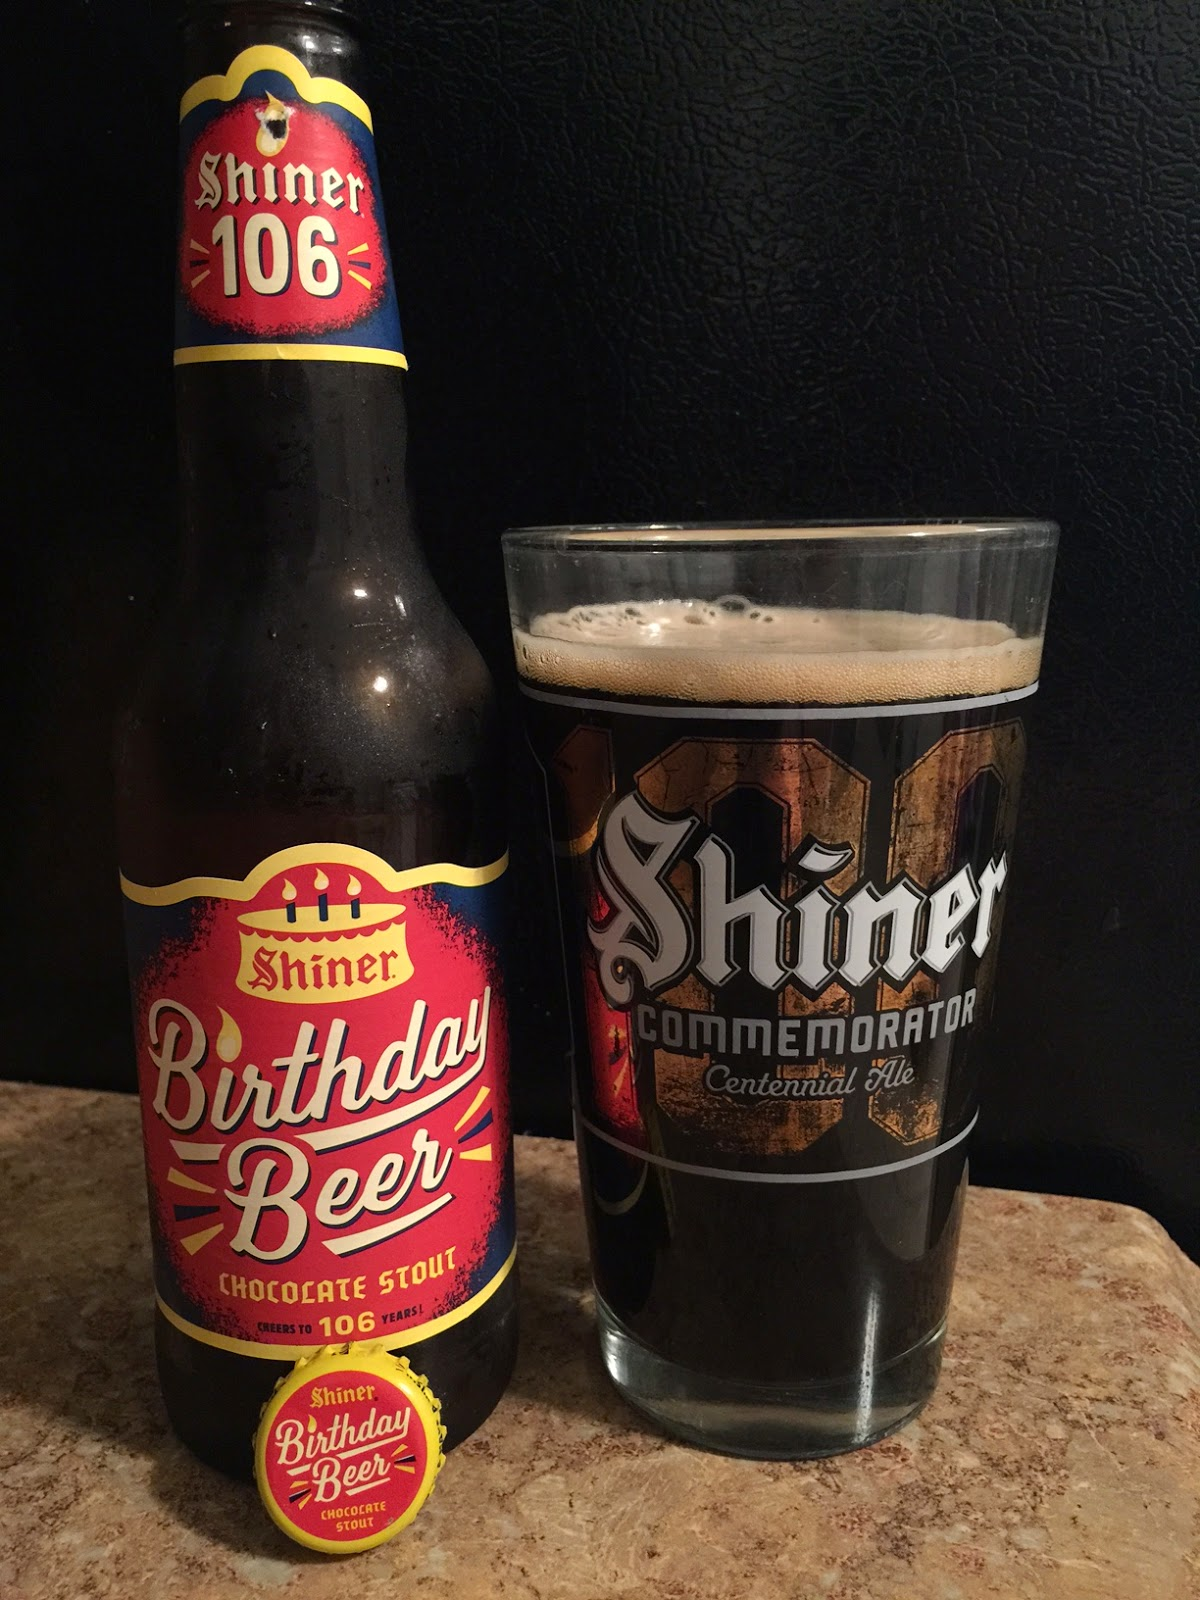 Beer Apostle: Shiner Birthday Beer Chocolate Stout